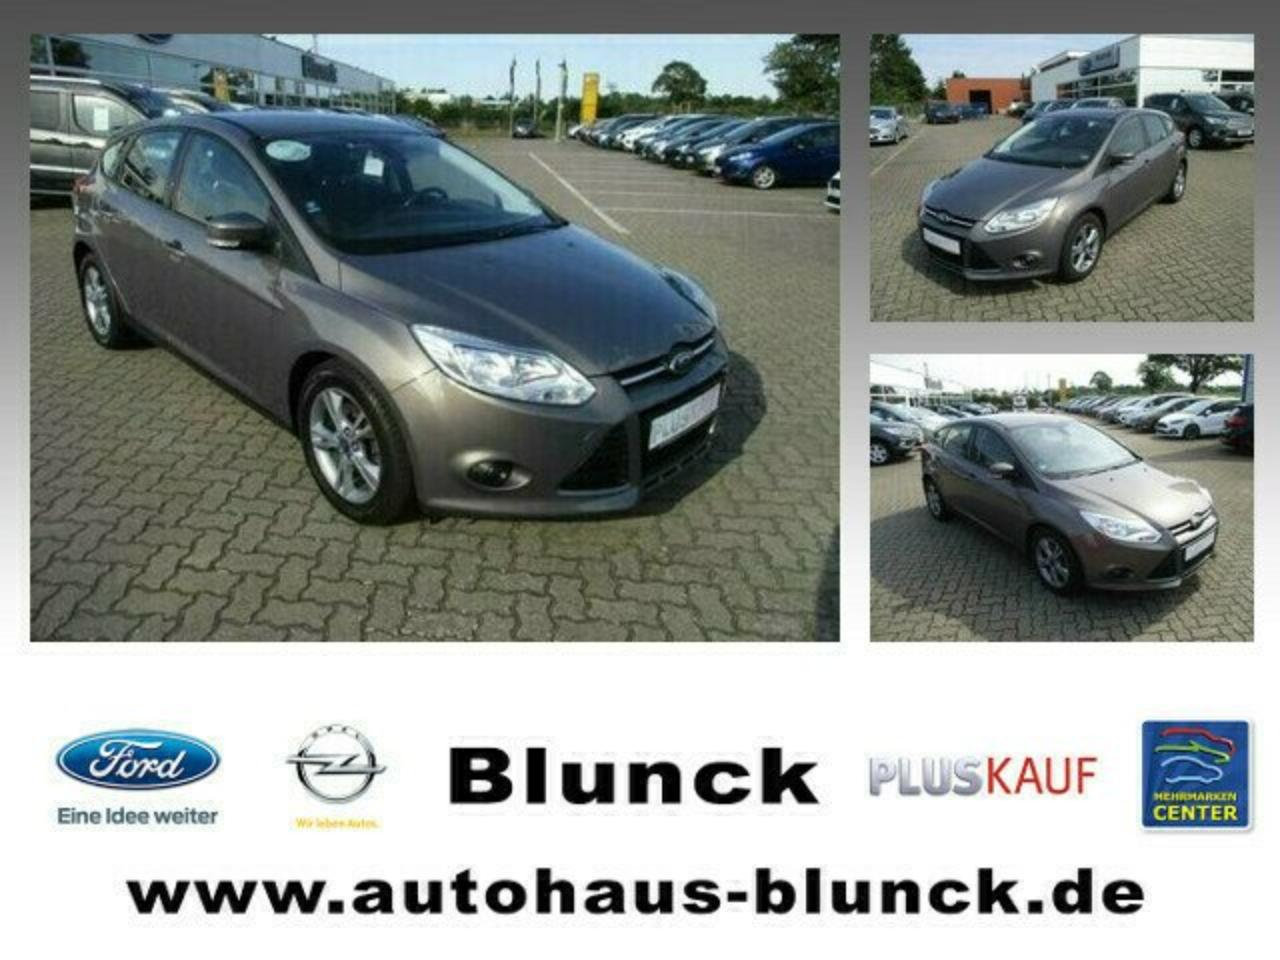 Ford Focus Sync Edition 1.6l 150 PS